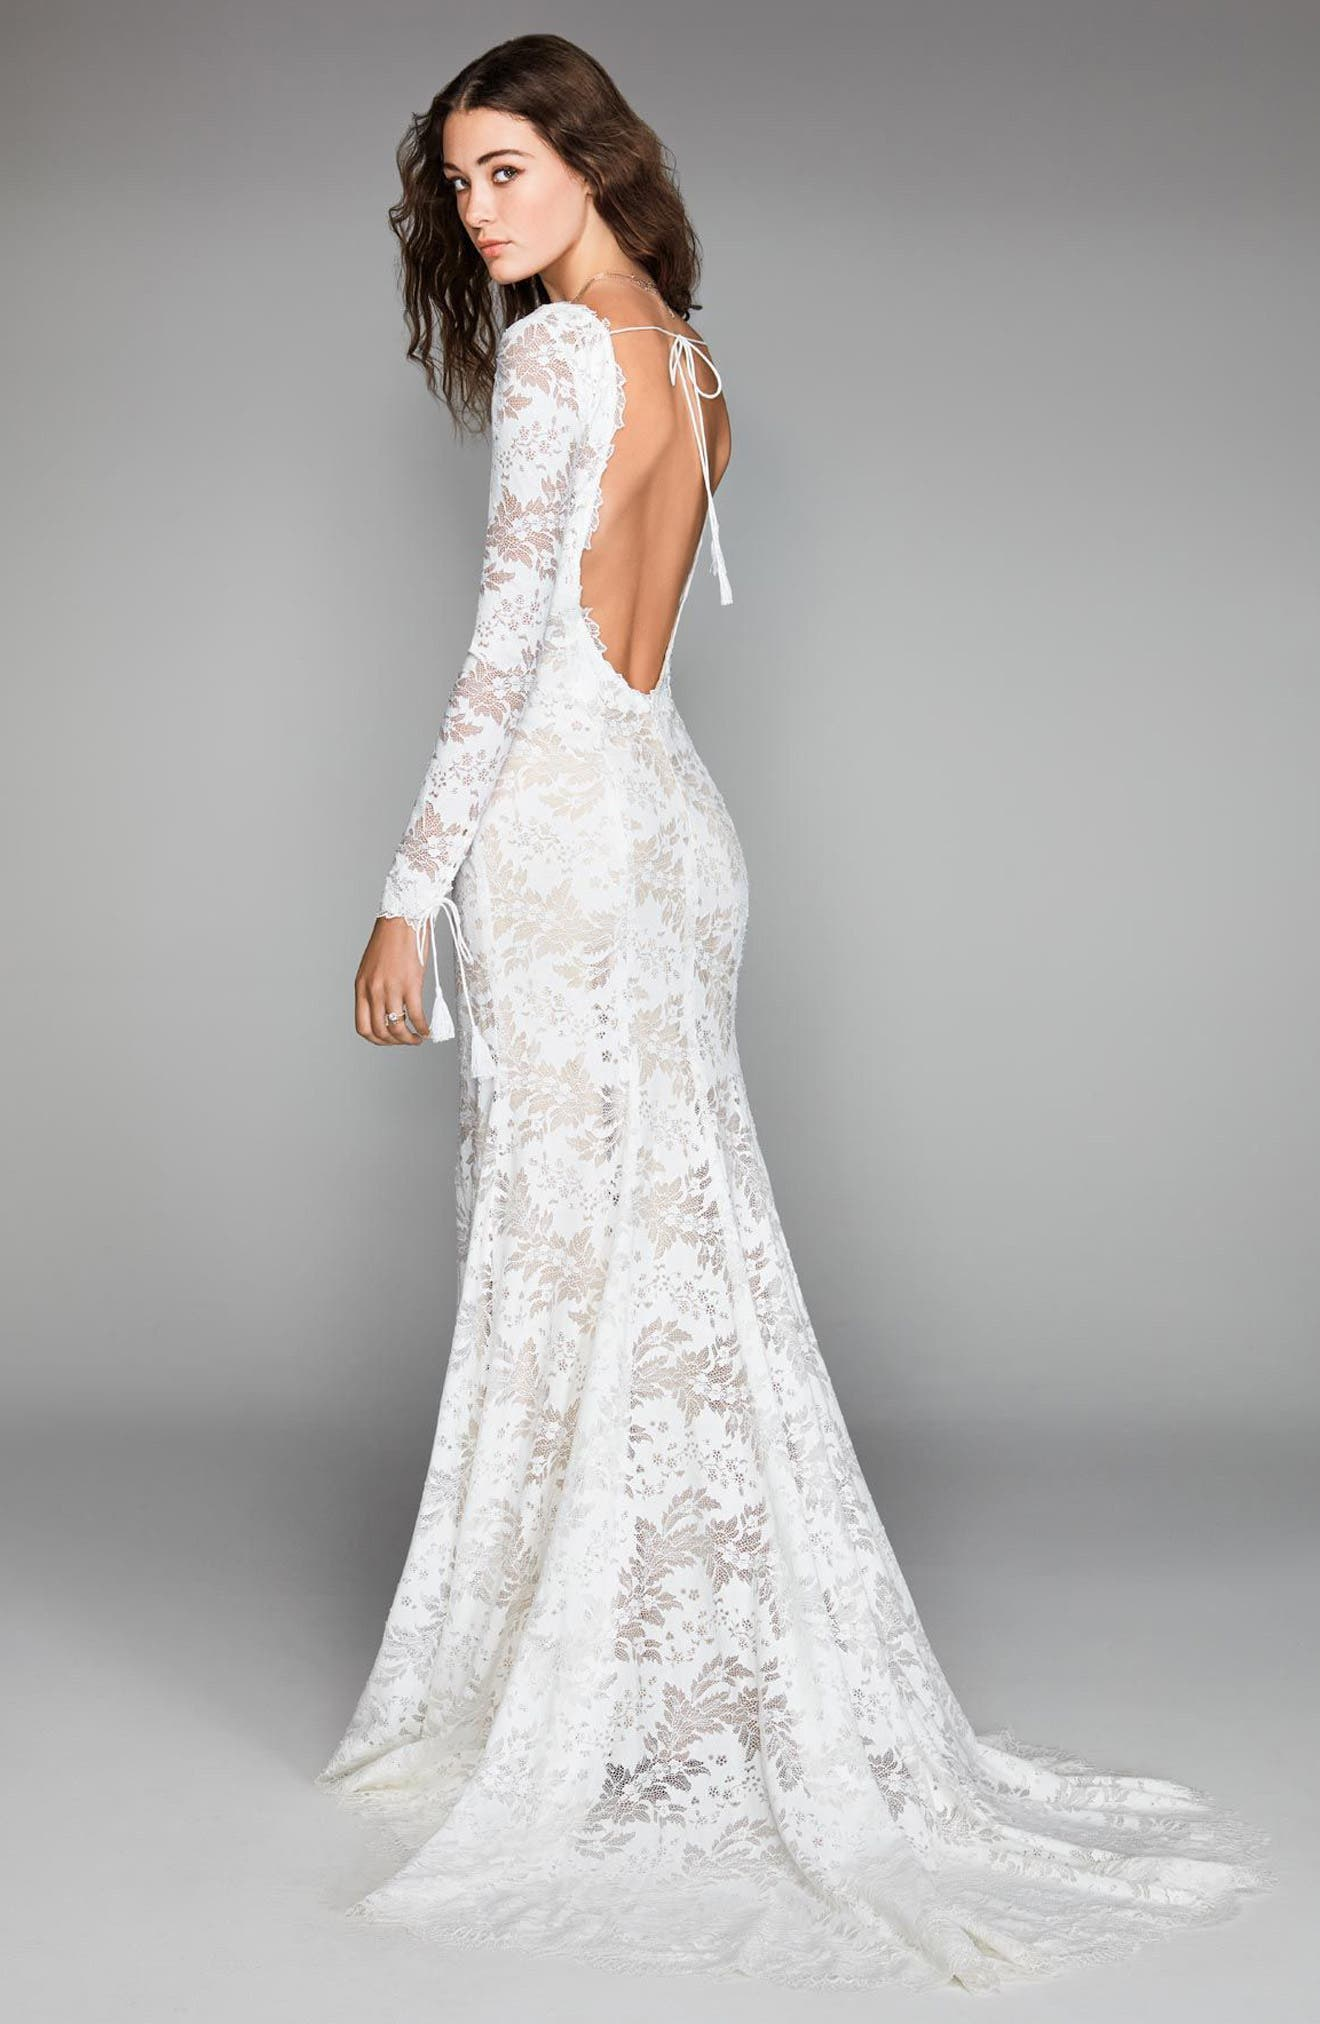 Luna Lace Mermaid Gown,                             Alternate thumbnail 2, color,                             Ivory/ Nude